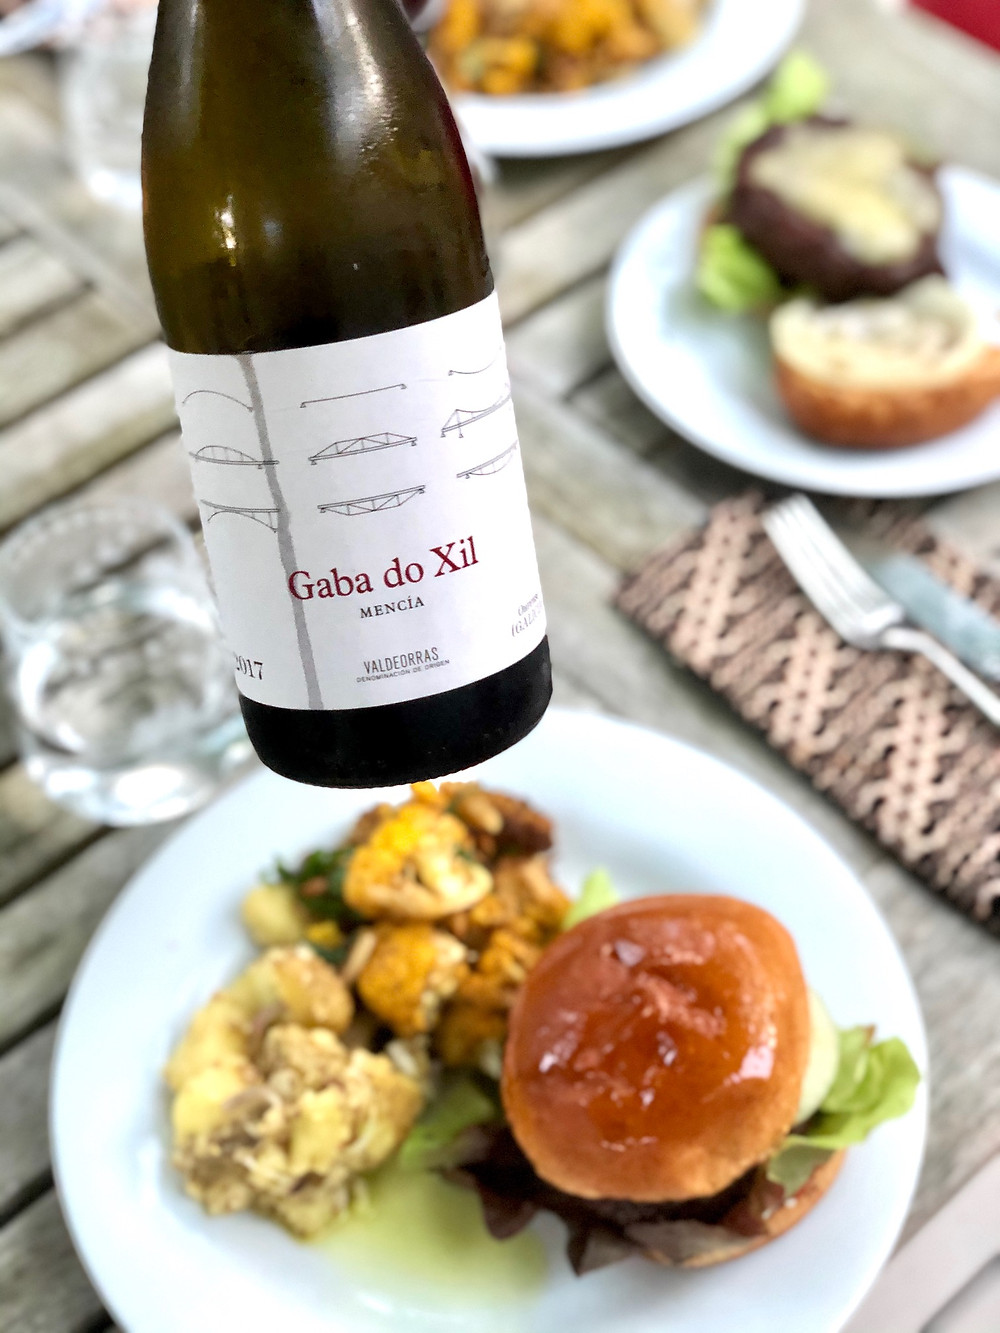 Red wines for burgers, cabernet franc from the Loire Valley, Mencia from Ribeira Sacra, Passetoutgrains from Burgundy, dry Lambrusco from Emilia Romagna